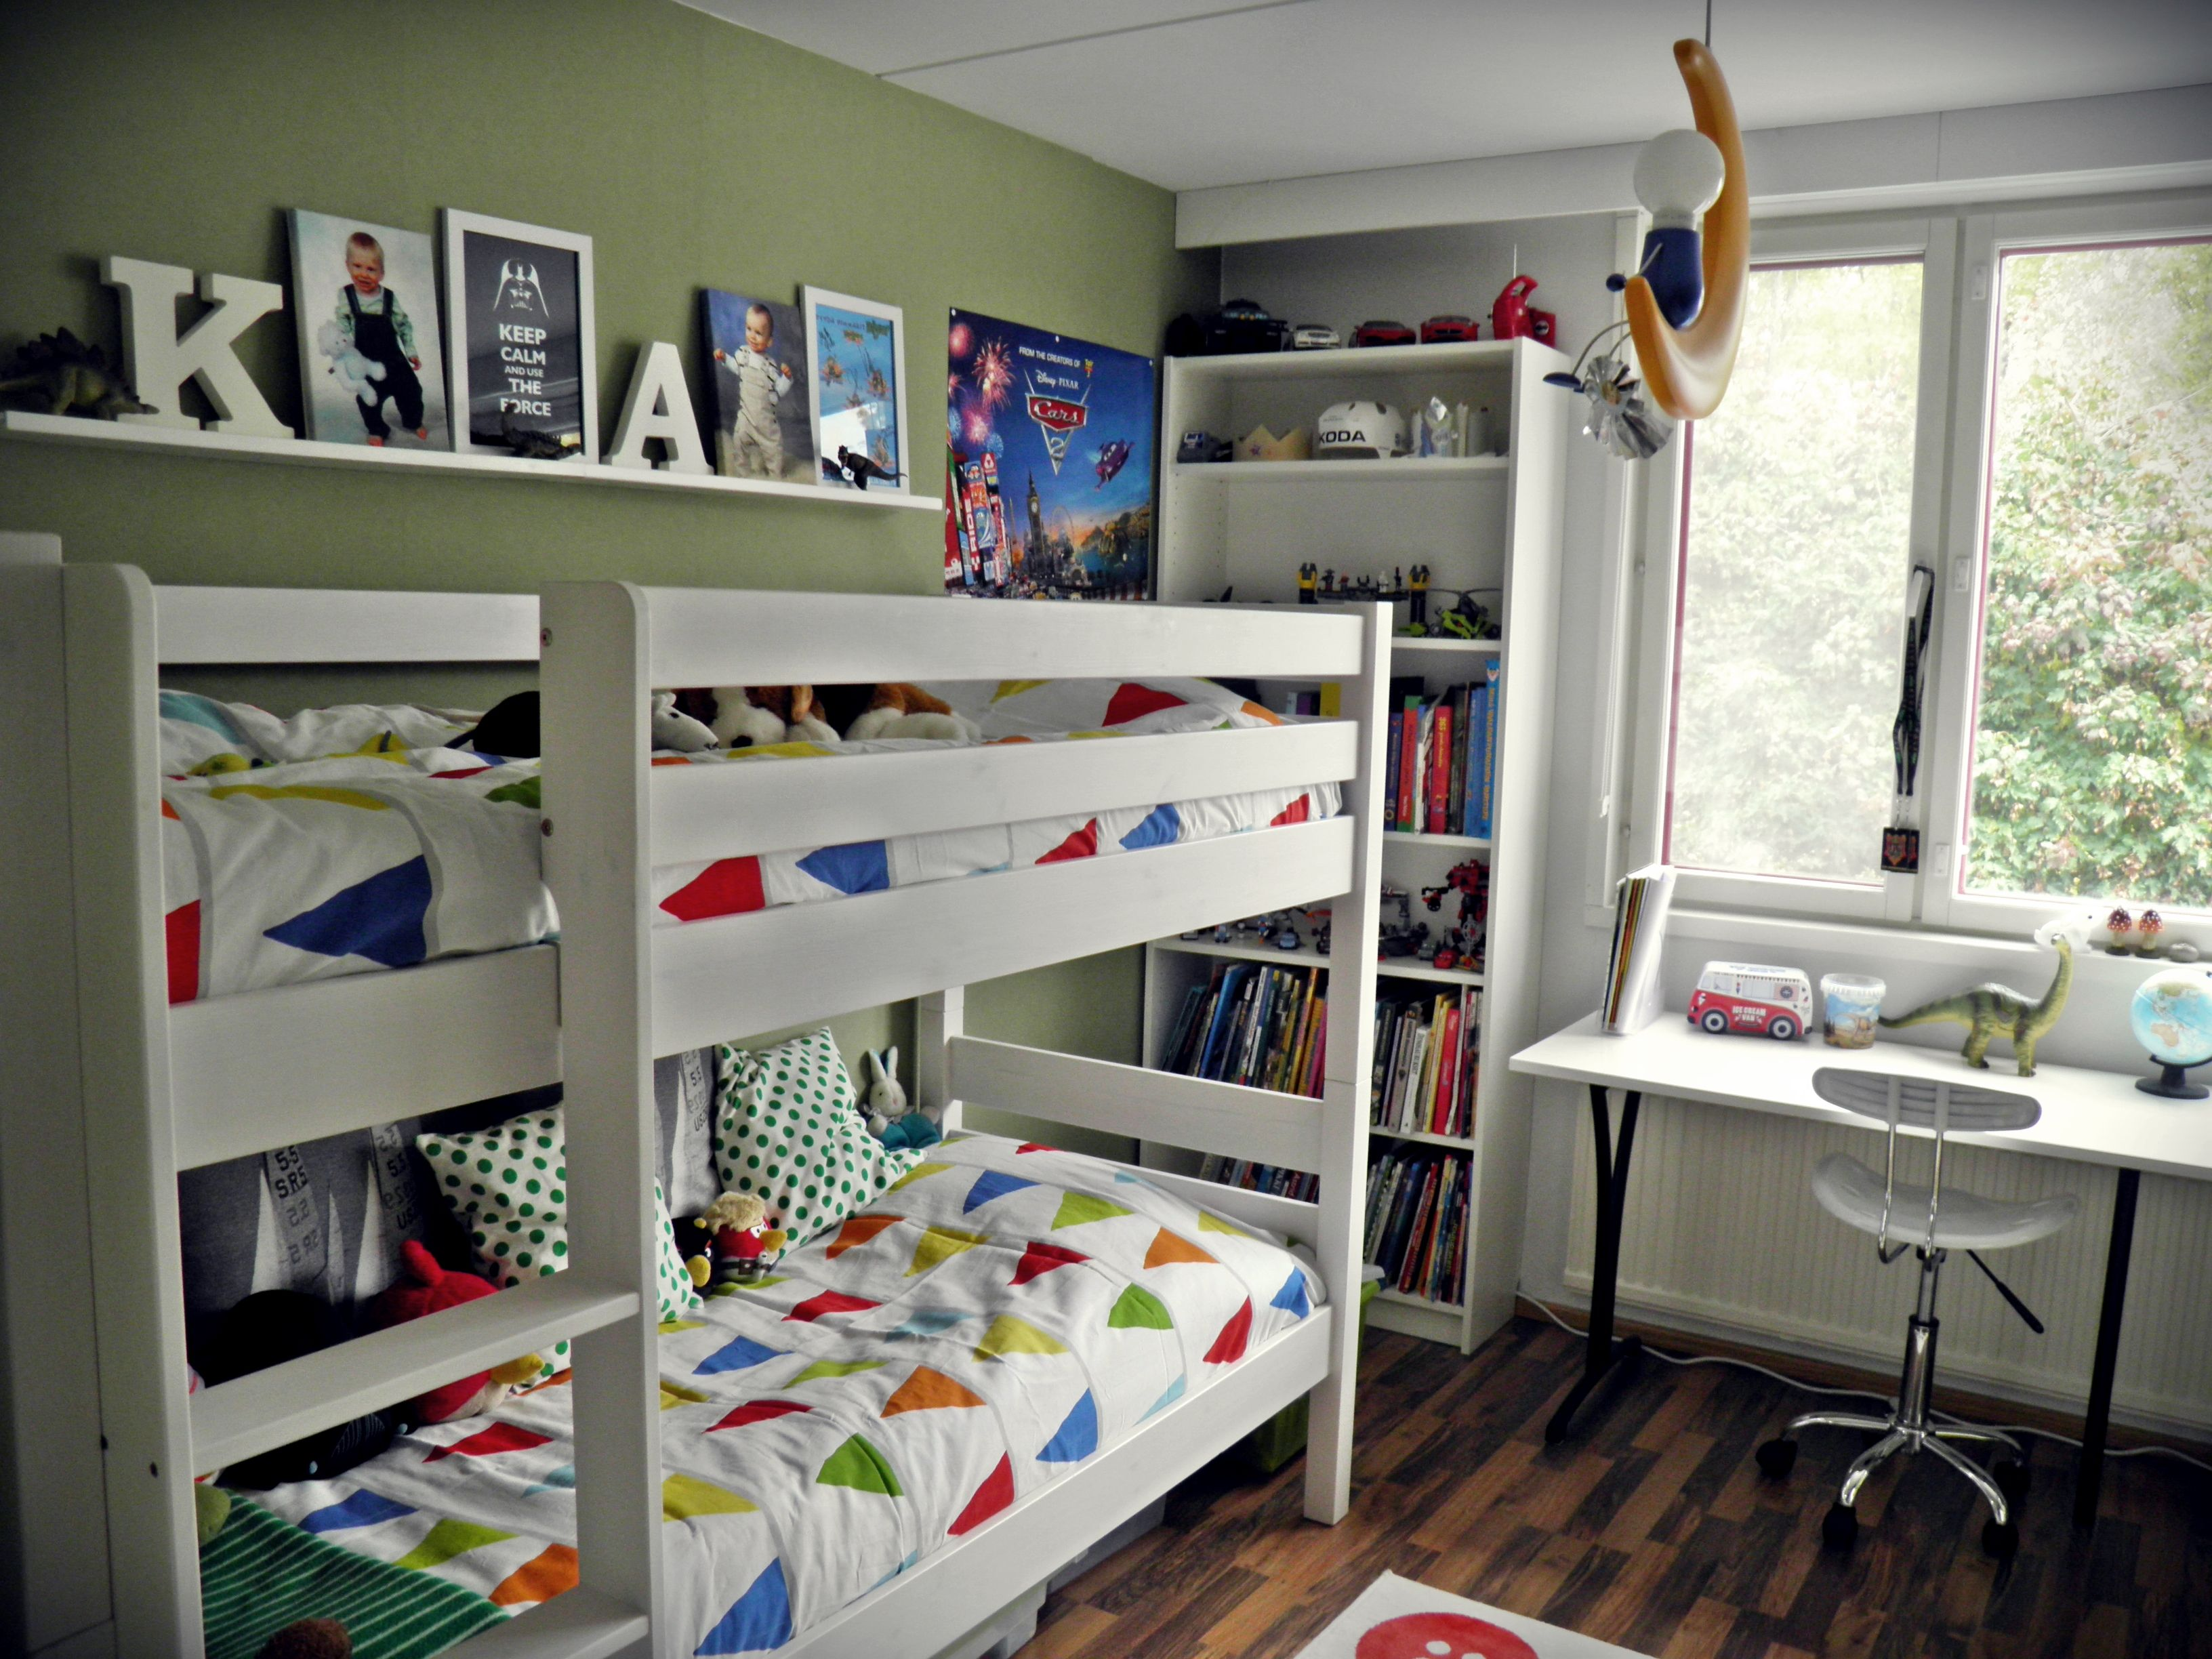 Cool Bunk Bed Rooms shelf above bunk bed for boys room for books, teddies. also like